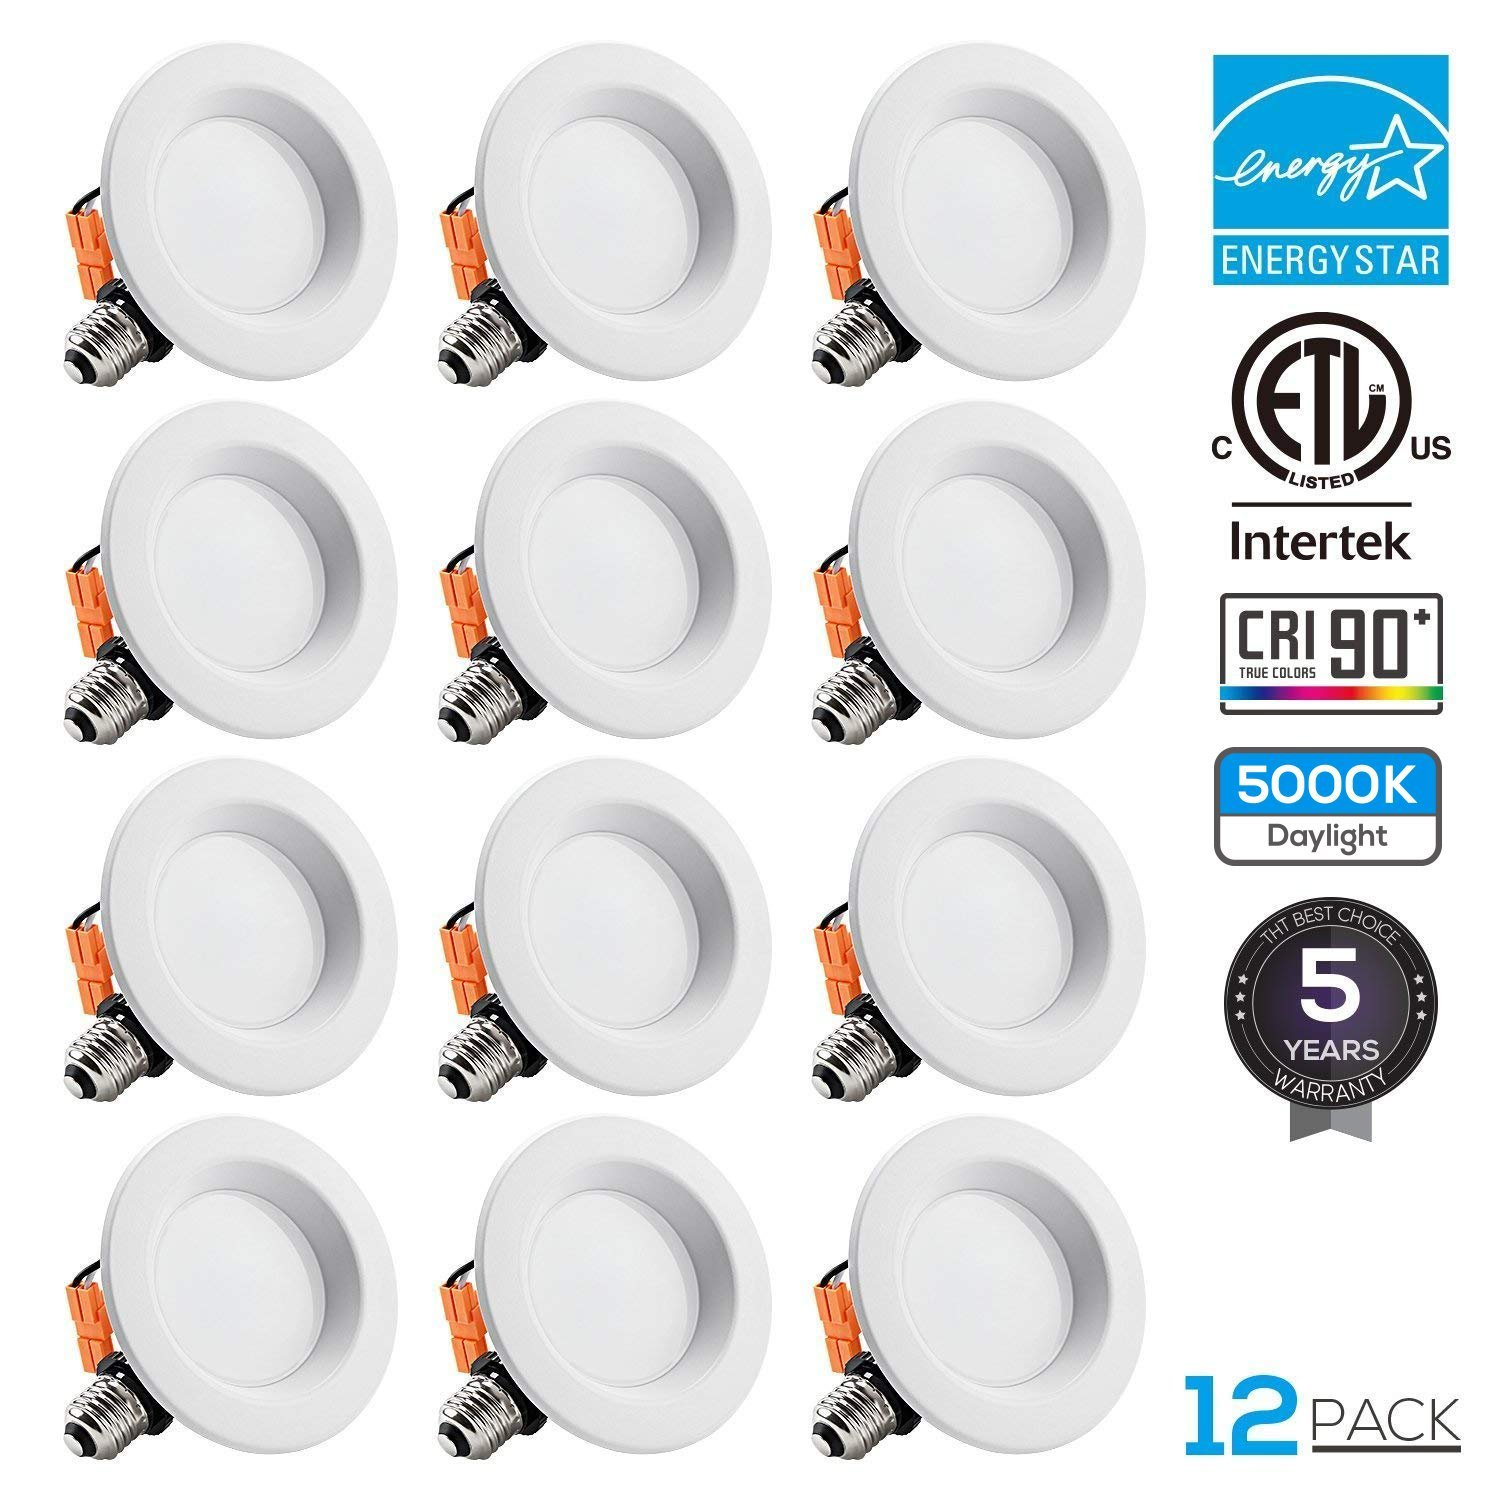 TORCHSTAR 12-Pack 4 inch Dimmable Recessed LED Downlight, 10W (65W Equivalent), CRI 90+, Energy Star, 5000K Daylight, 700lm, LED Retrofit Lighting Fixture, 5 Years Warranty by TORCHSTAR (Image #1)